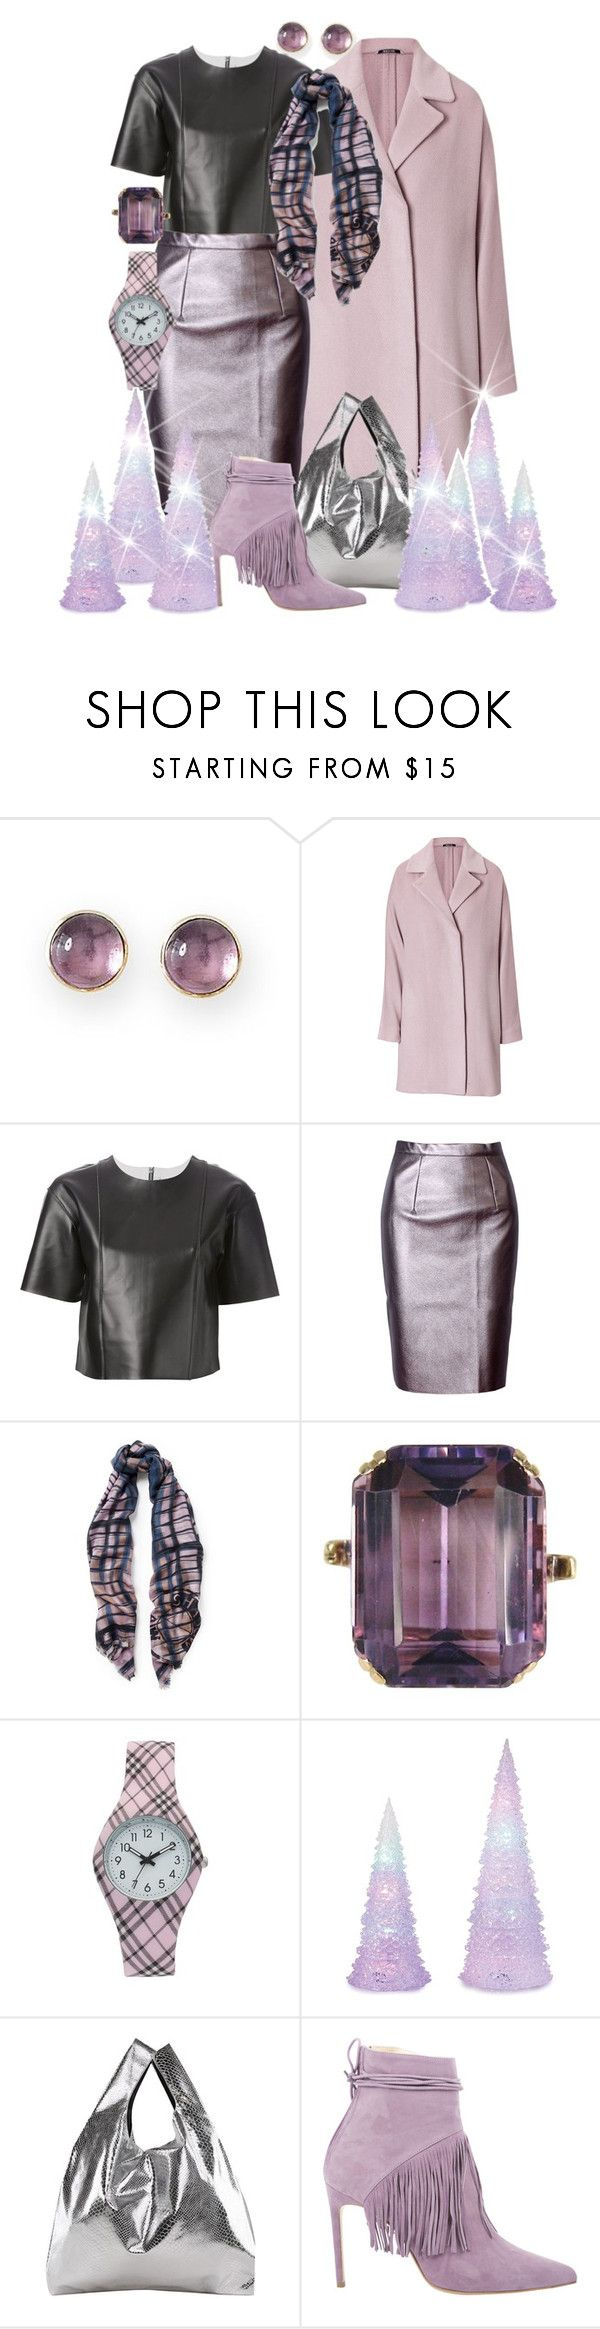 """""""Shine and Shimmer"""" by donna-capodelupo ❤ liked on Polyvore featuring Mark & Graham, Maison Margiela, T By Alexander Wang, WithChic, Amanda Wakeley, MM6 Maison Margiela, contestentry and holidaystyle"""